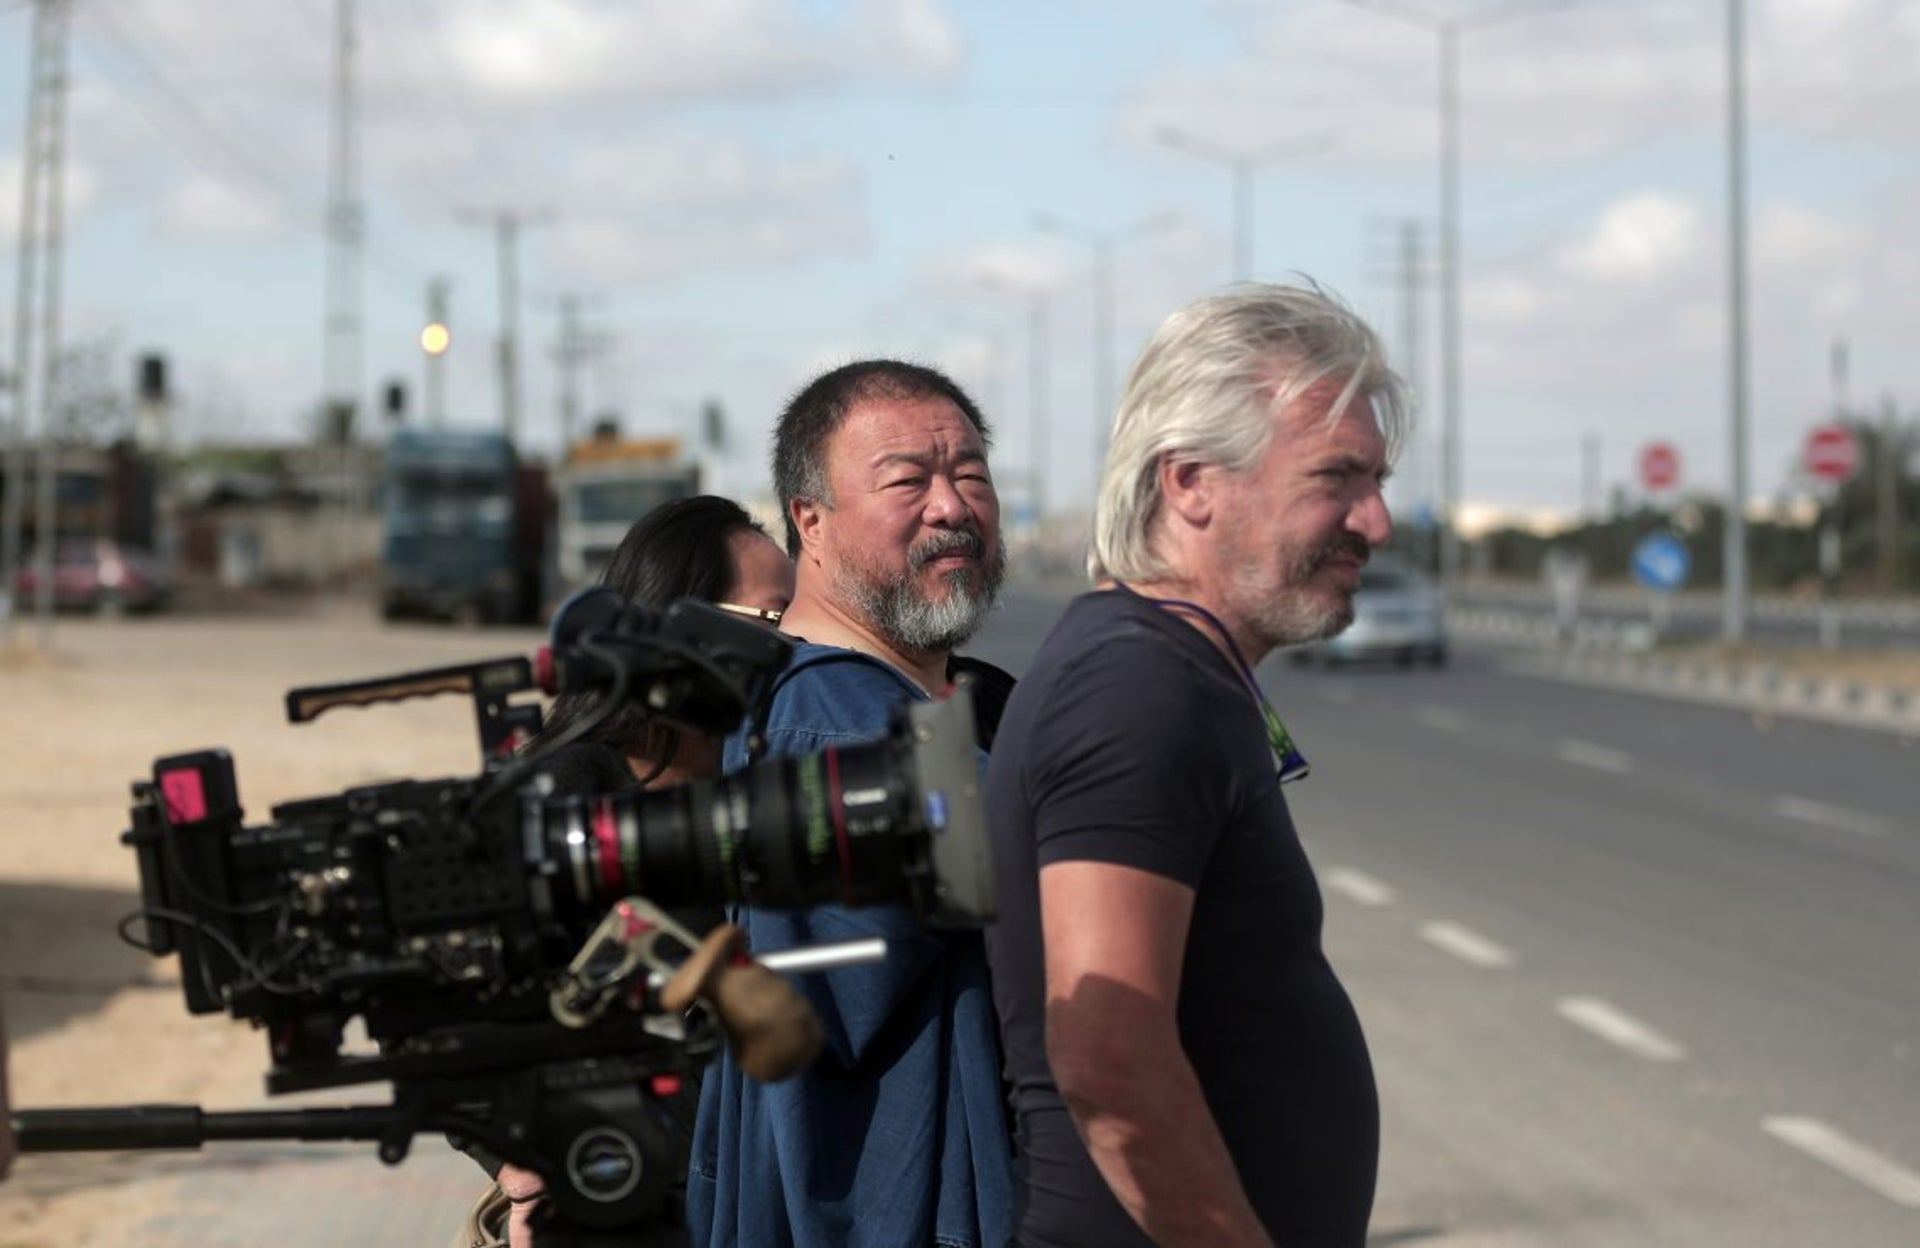 Chinese artist and activist Ai Weiwei, center, filming a documentary on refugees at Gaza's Rafah crossing with Egypt, May 11, 2016.